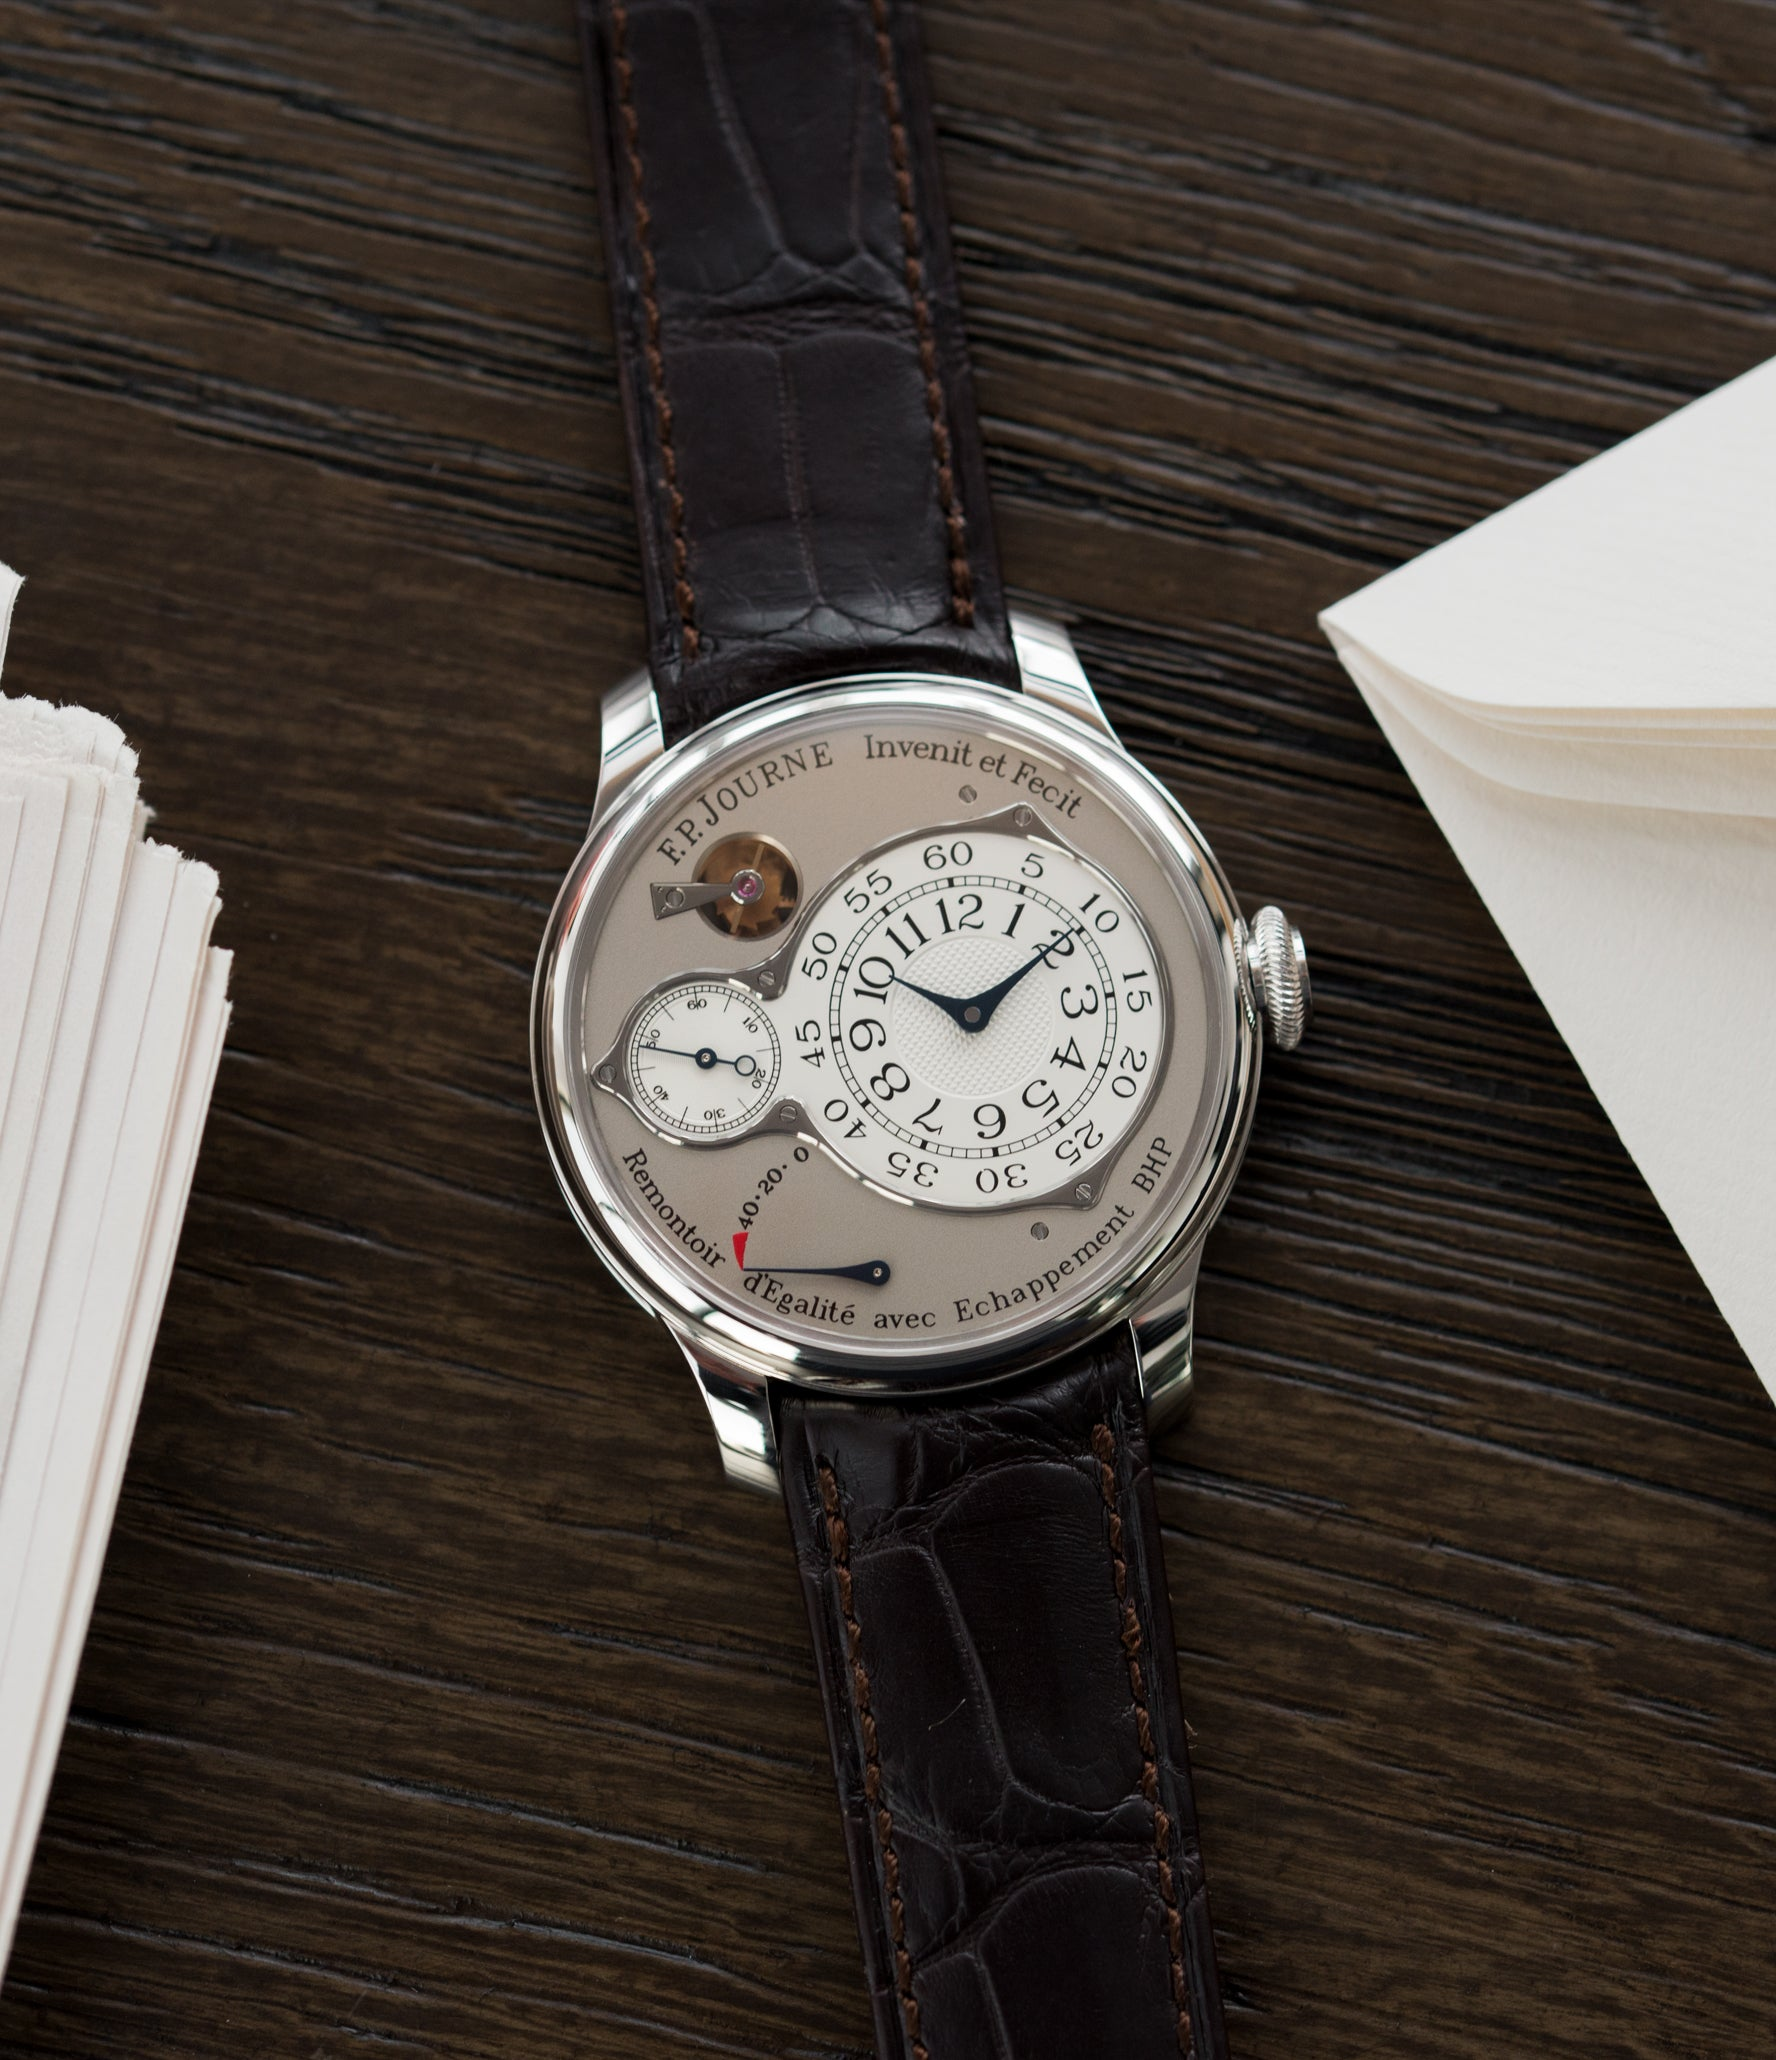 preowned F. P. Journe Chronometre Optimum platinum rare watch for sale online at A Collected Man London approved retailer of independent watchmakers